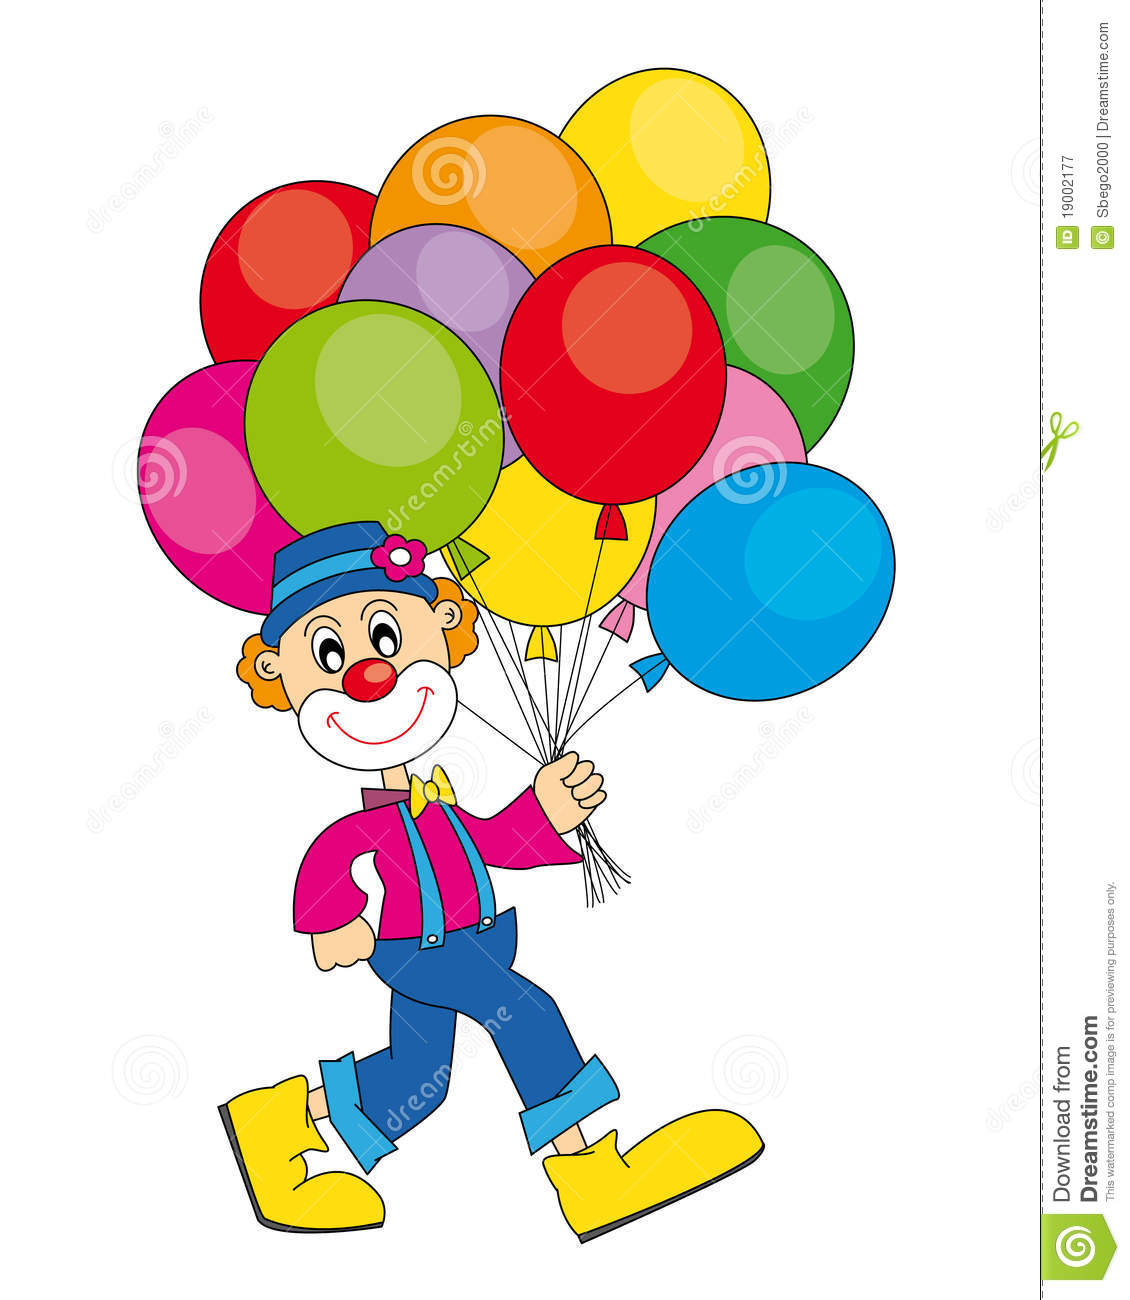 Clown With Balloons Royalty Free Stock Photography Image 19002177